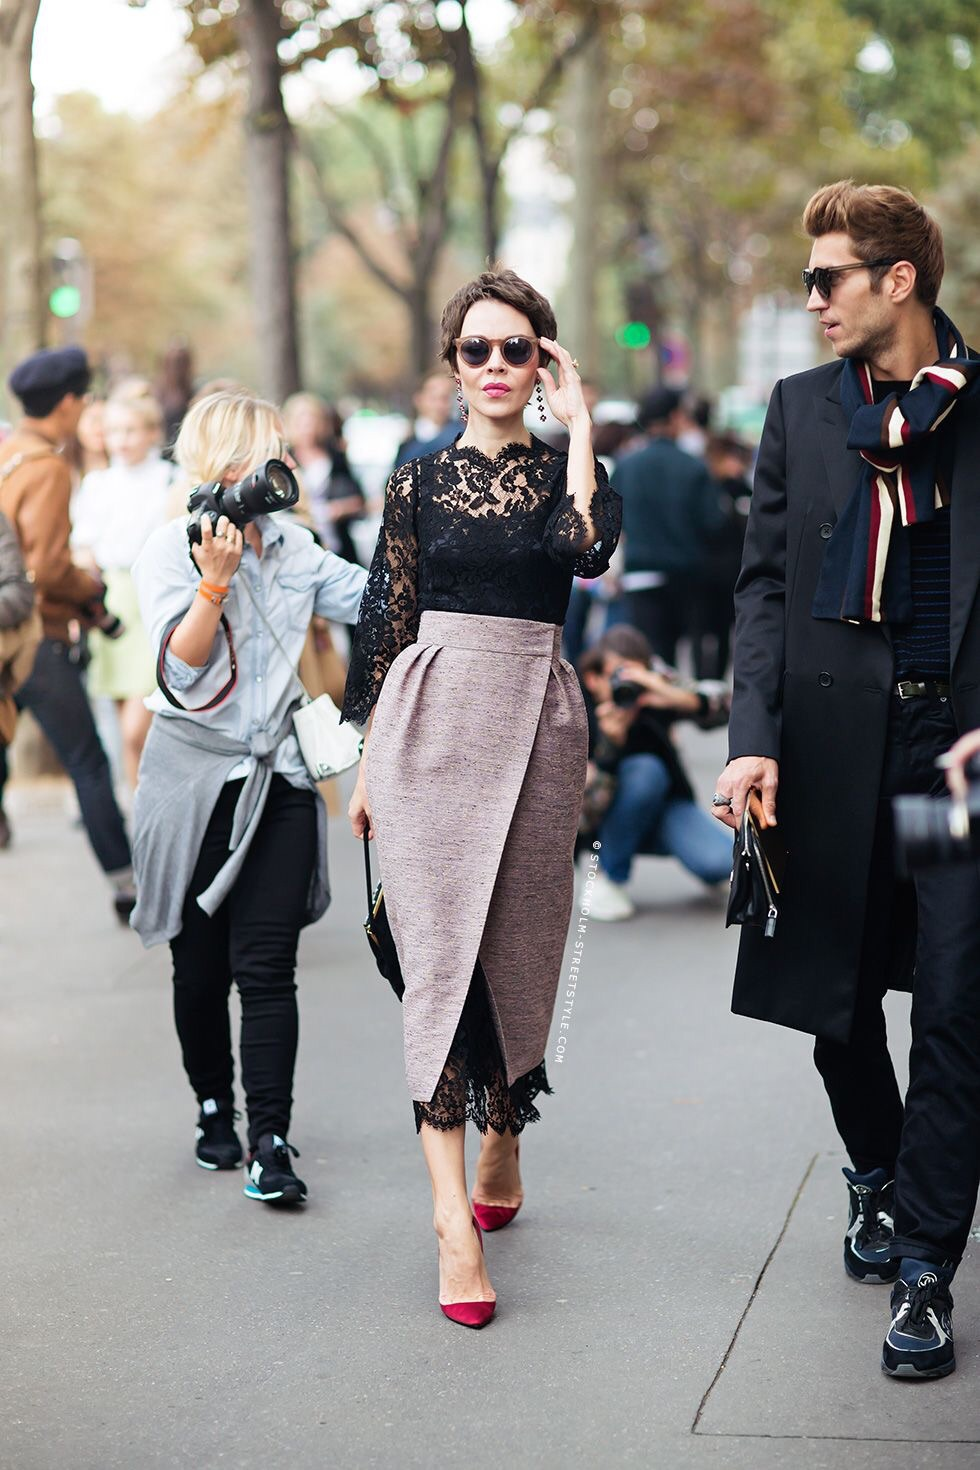 Well tailored, ready-to-wear runway fashion. Such beautiful lace with a scalloped edge detail. (Image Source: Bloglovin.com, Stockholm Street Style)